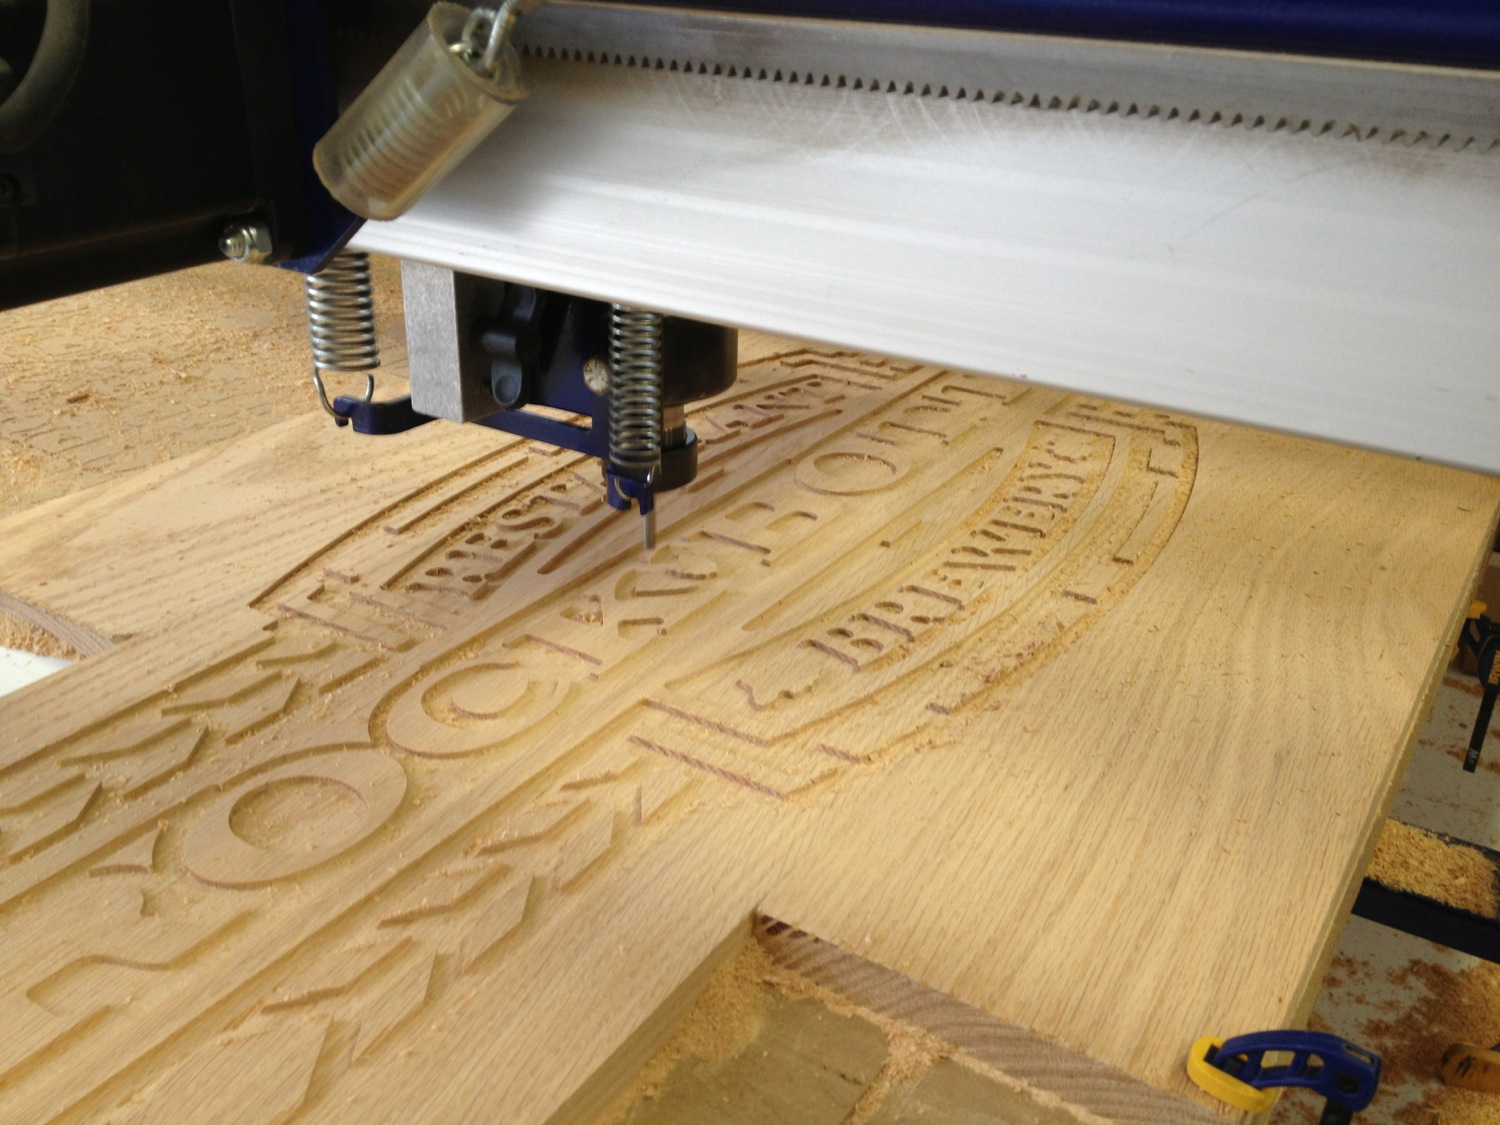 LR_Design_Build_CNC_Routing_5.jpg